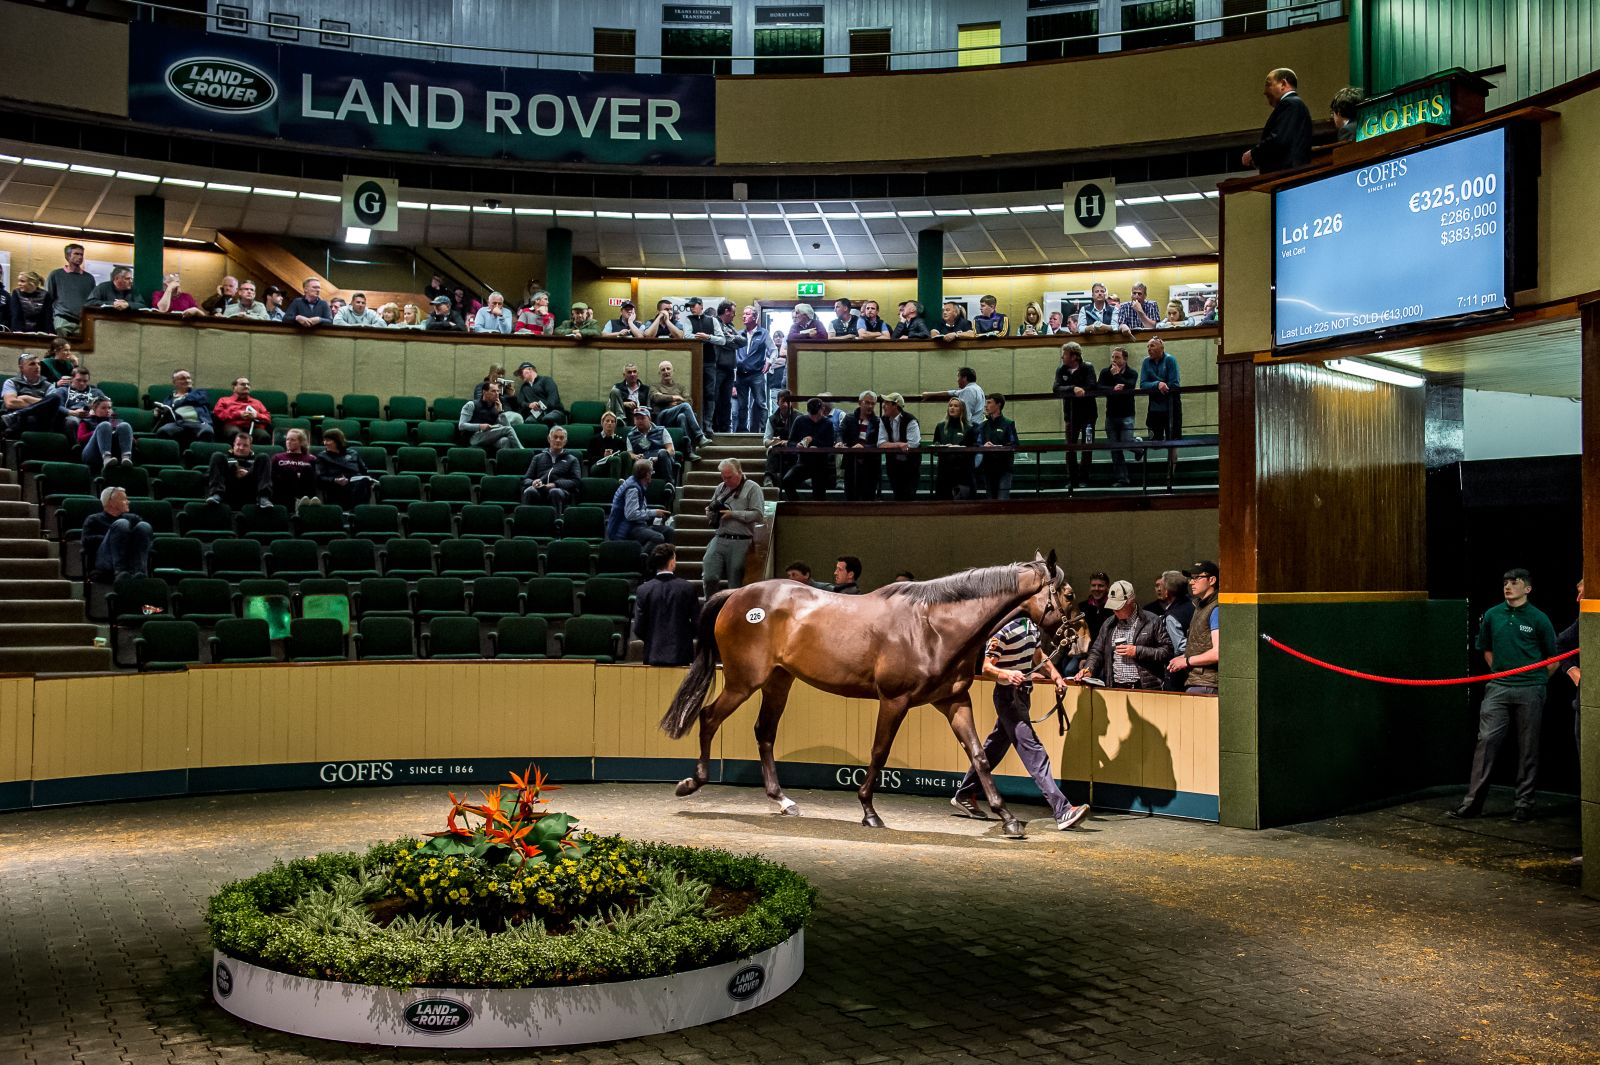 Paul Nicholls Secures €325,000 Record Top Lot At Goffs Land Rover